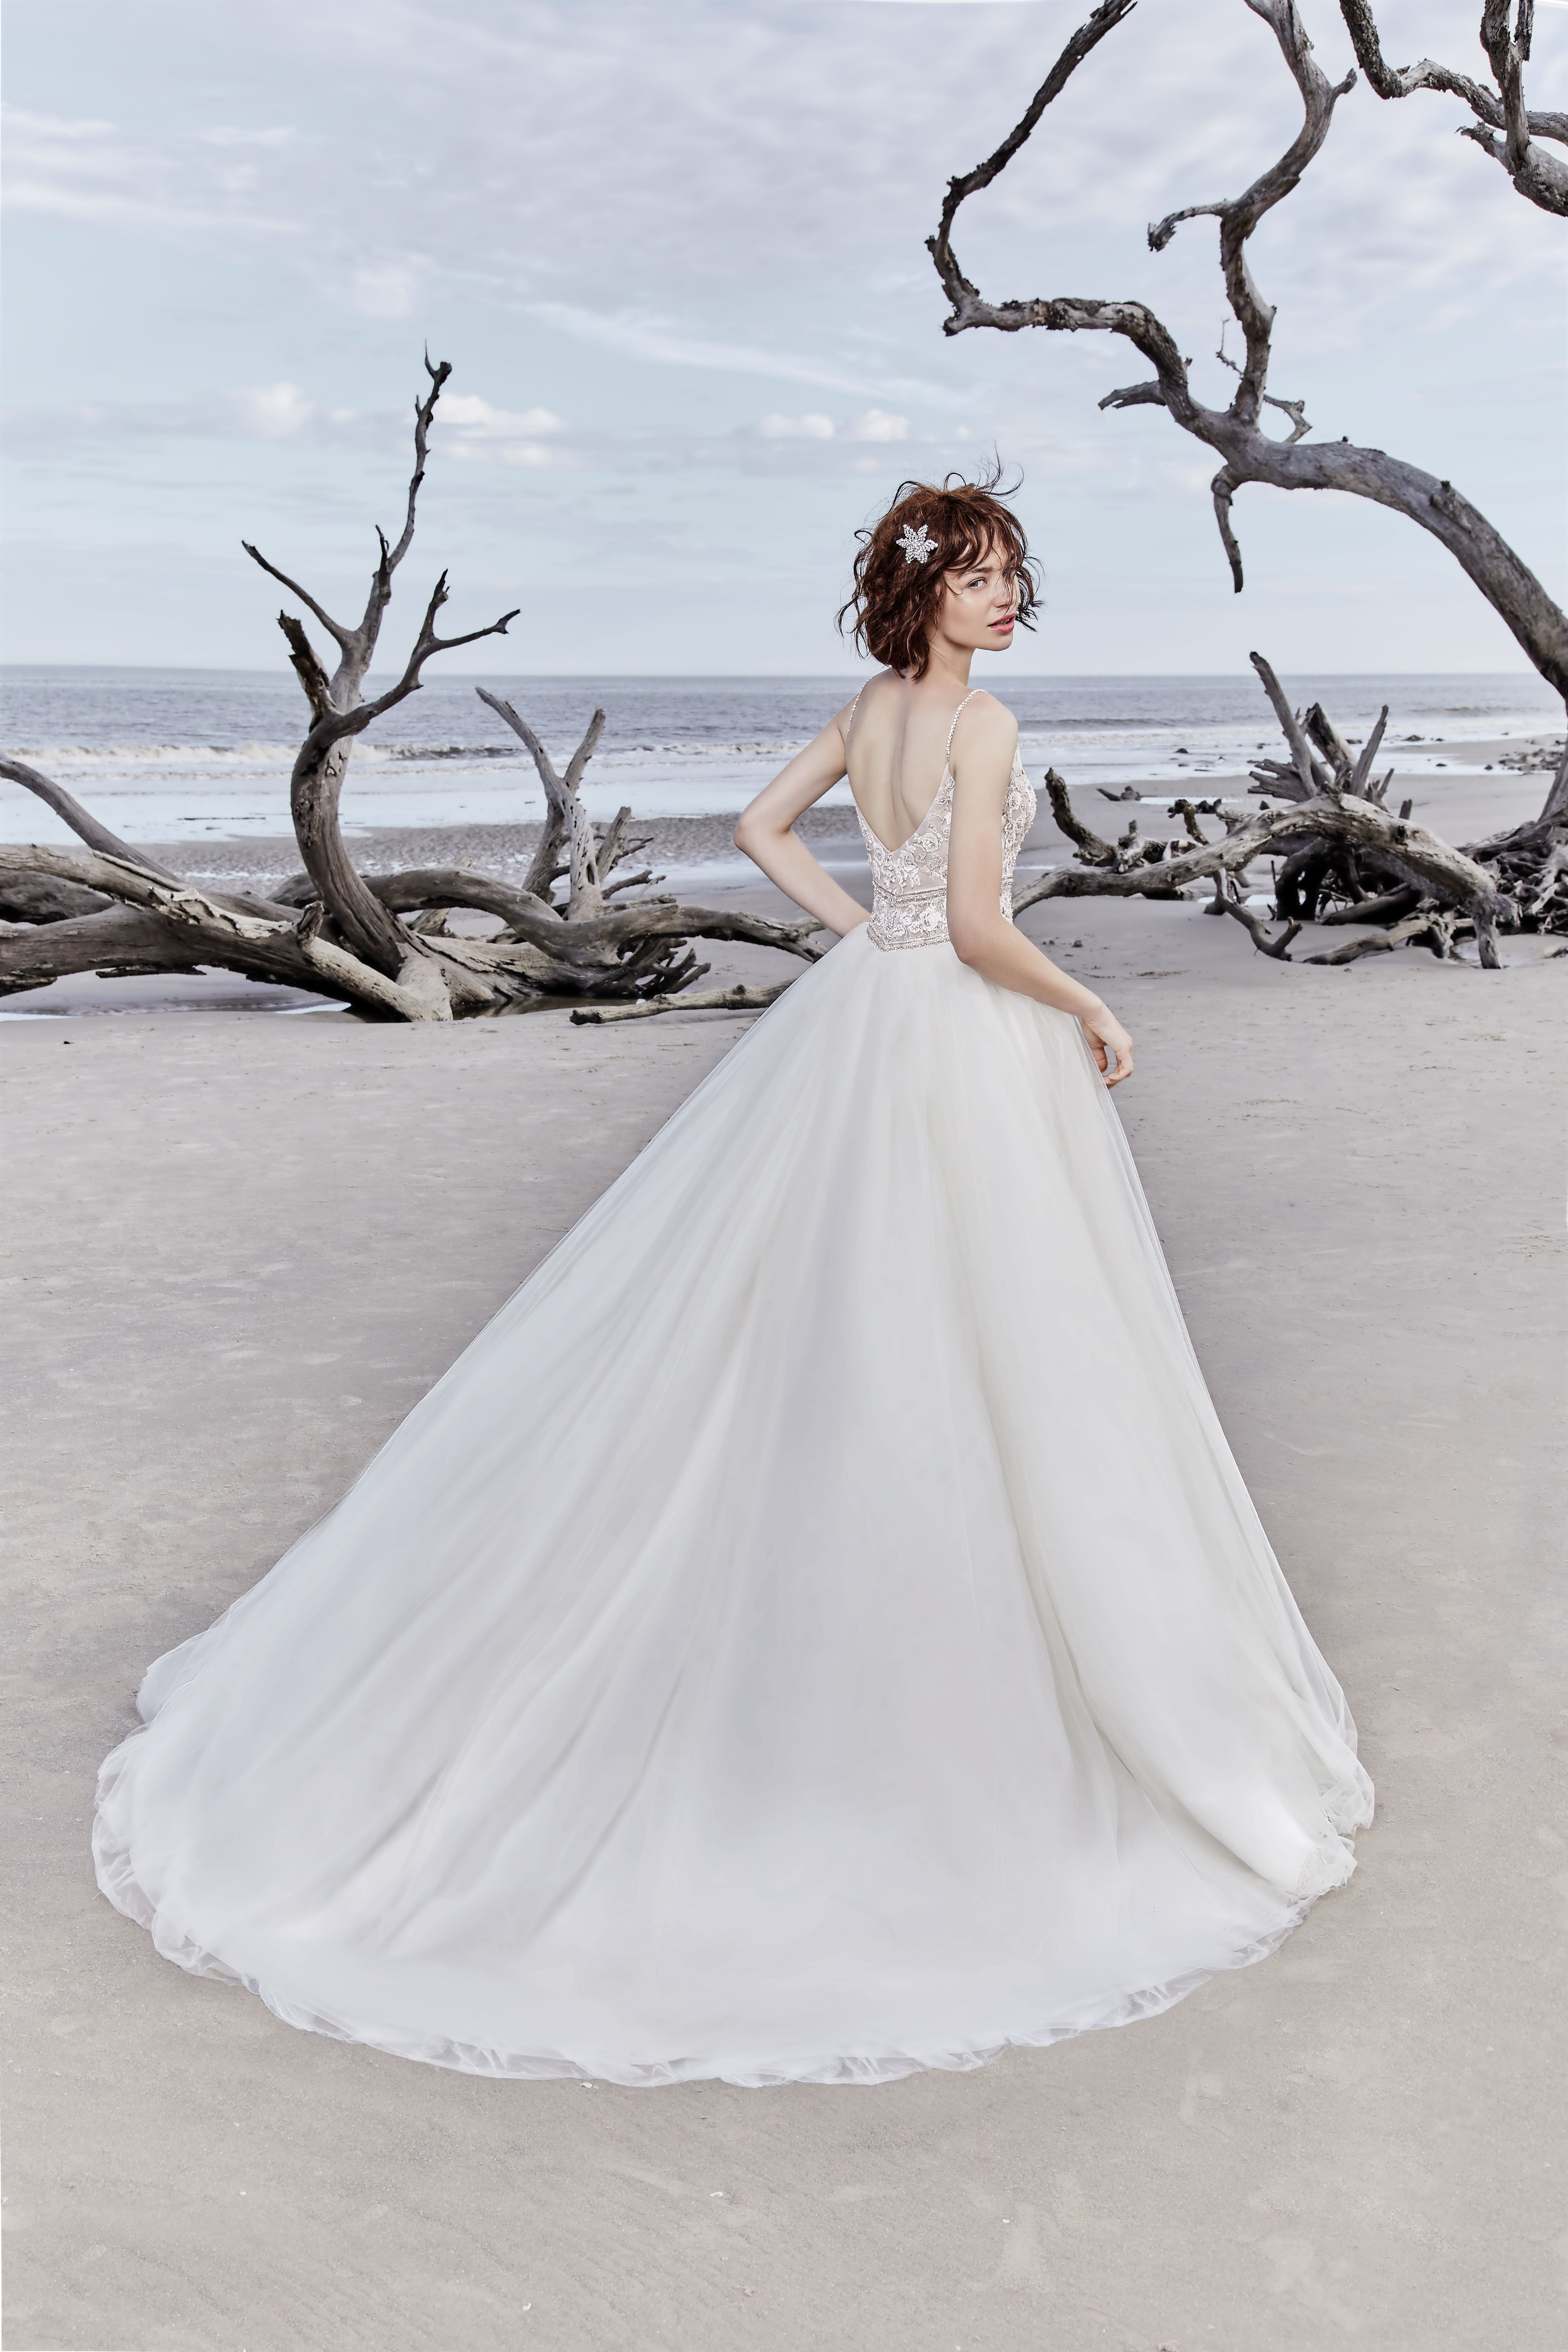 Ball gown wedding gown, with beaded bodice and diamond